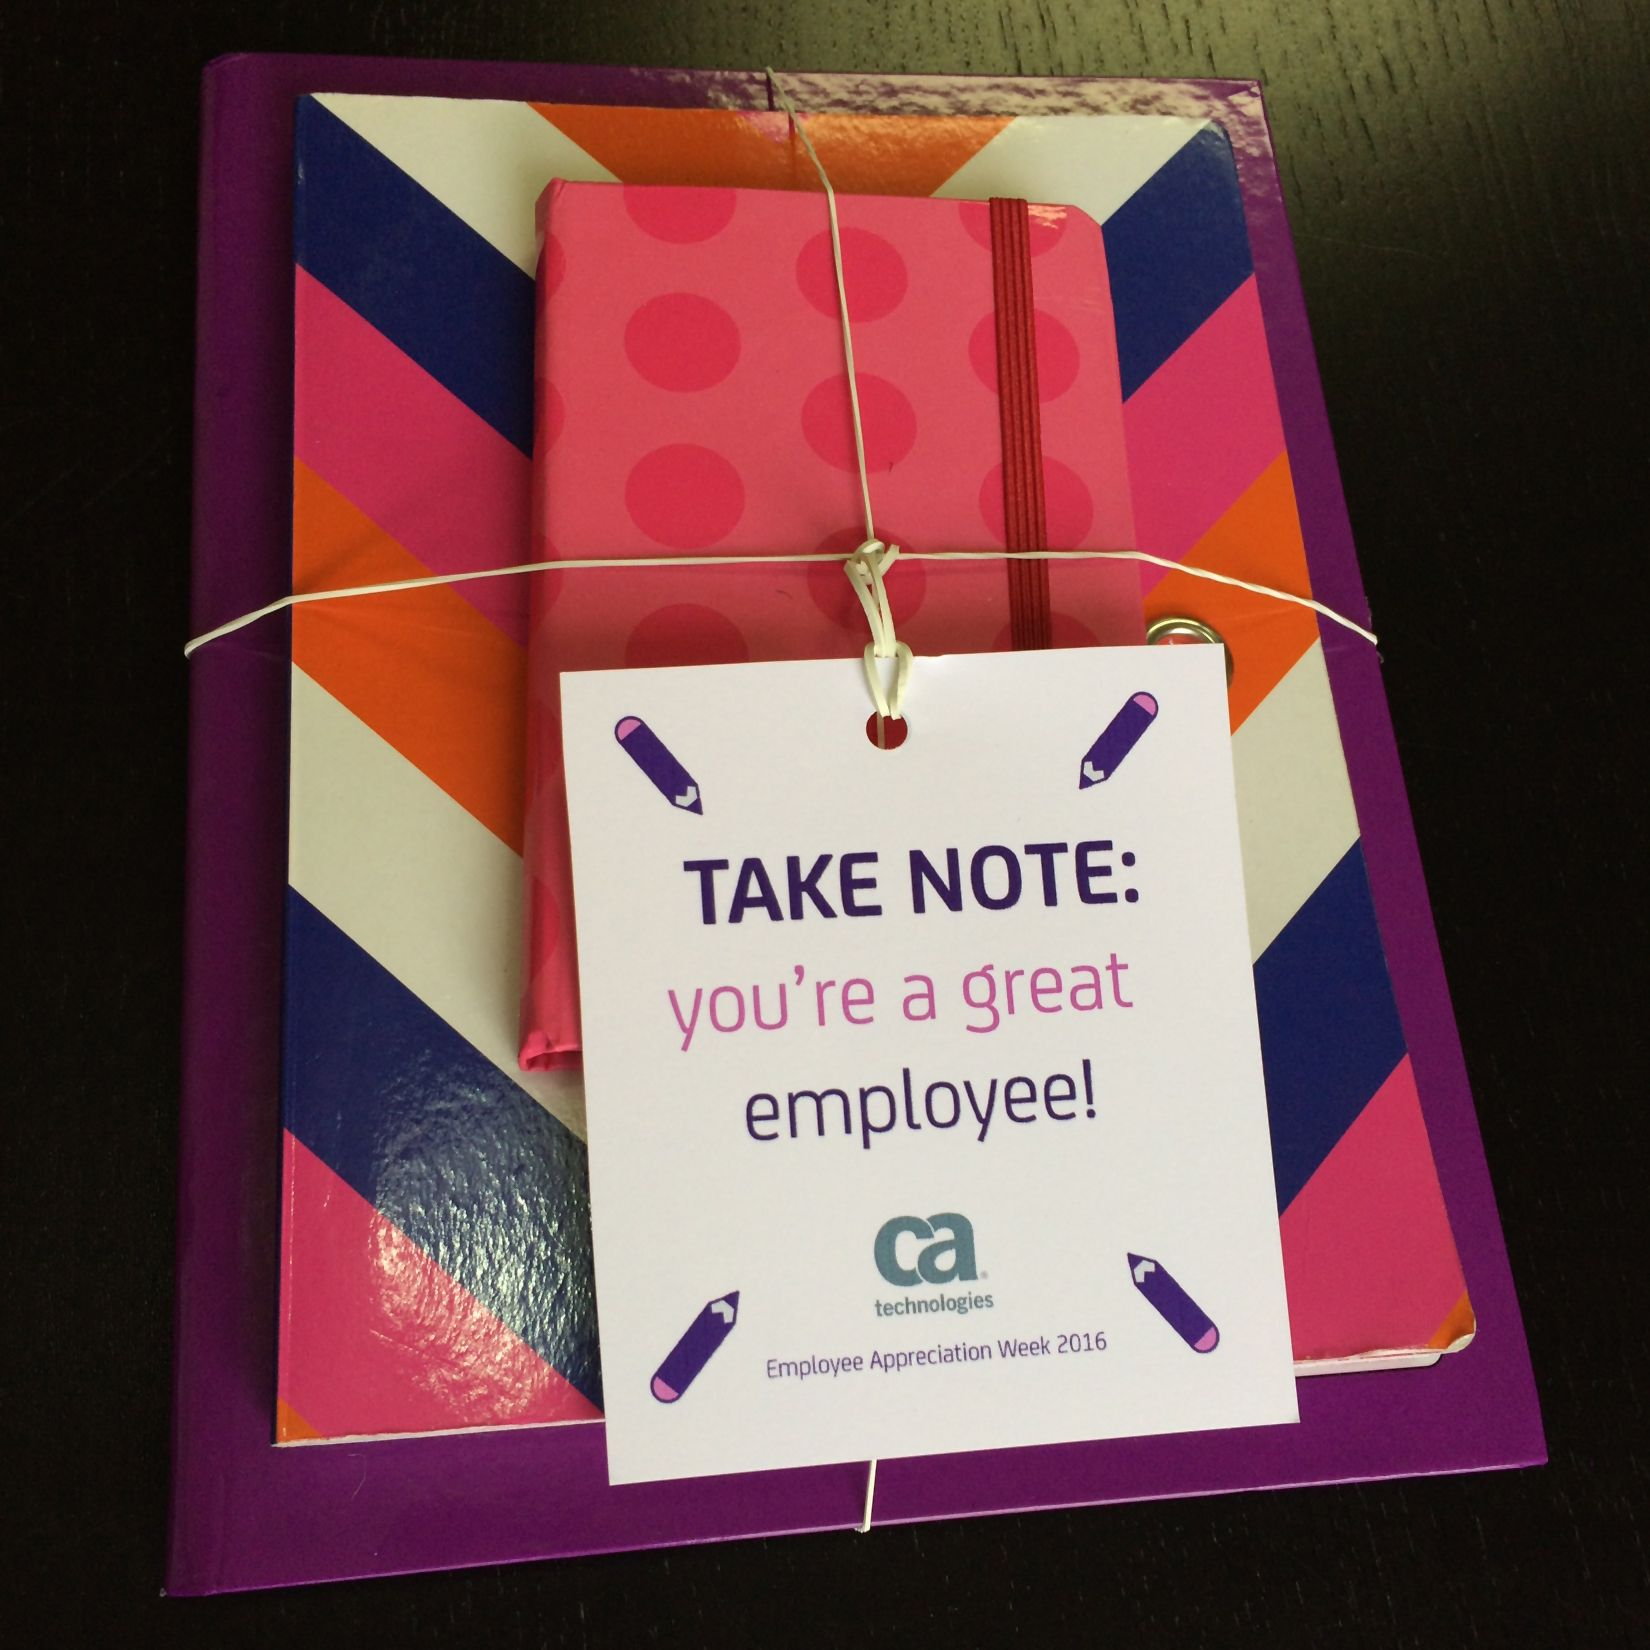 take note youre a great employee notebook set fun employee appreciation giftsemployee